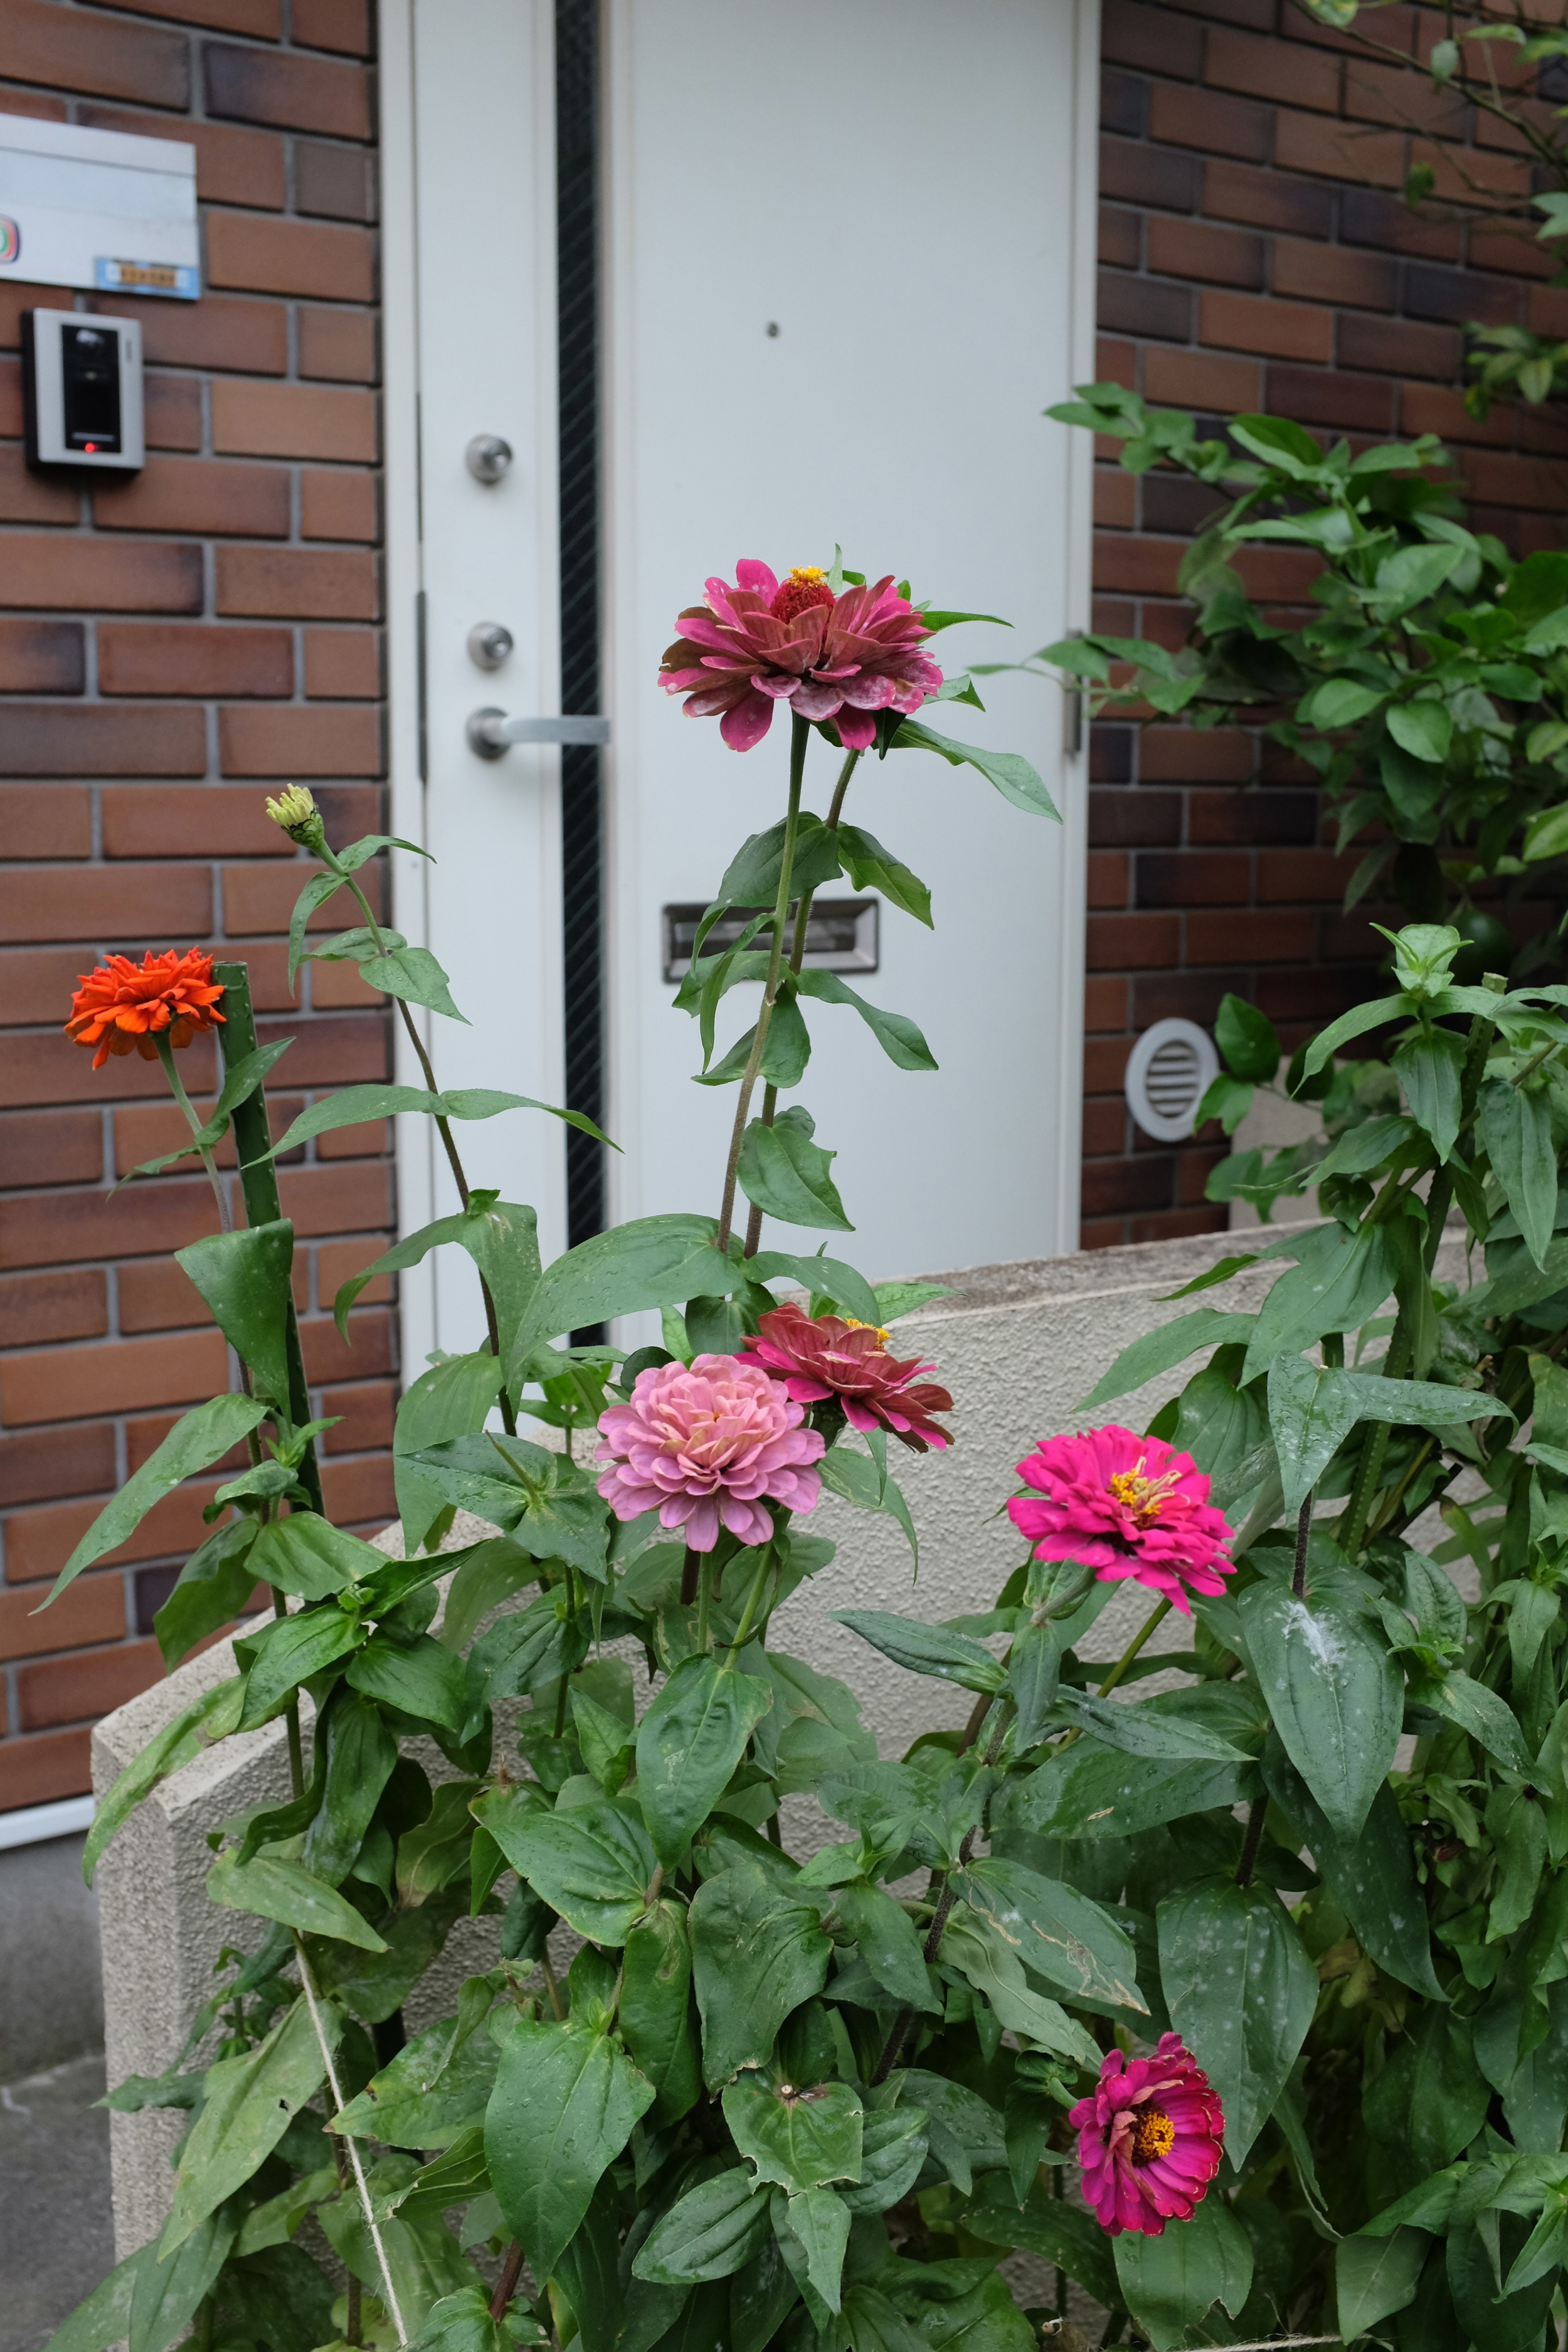 Flowers on the doorstep